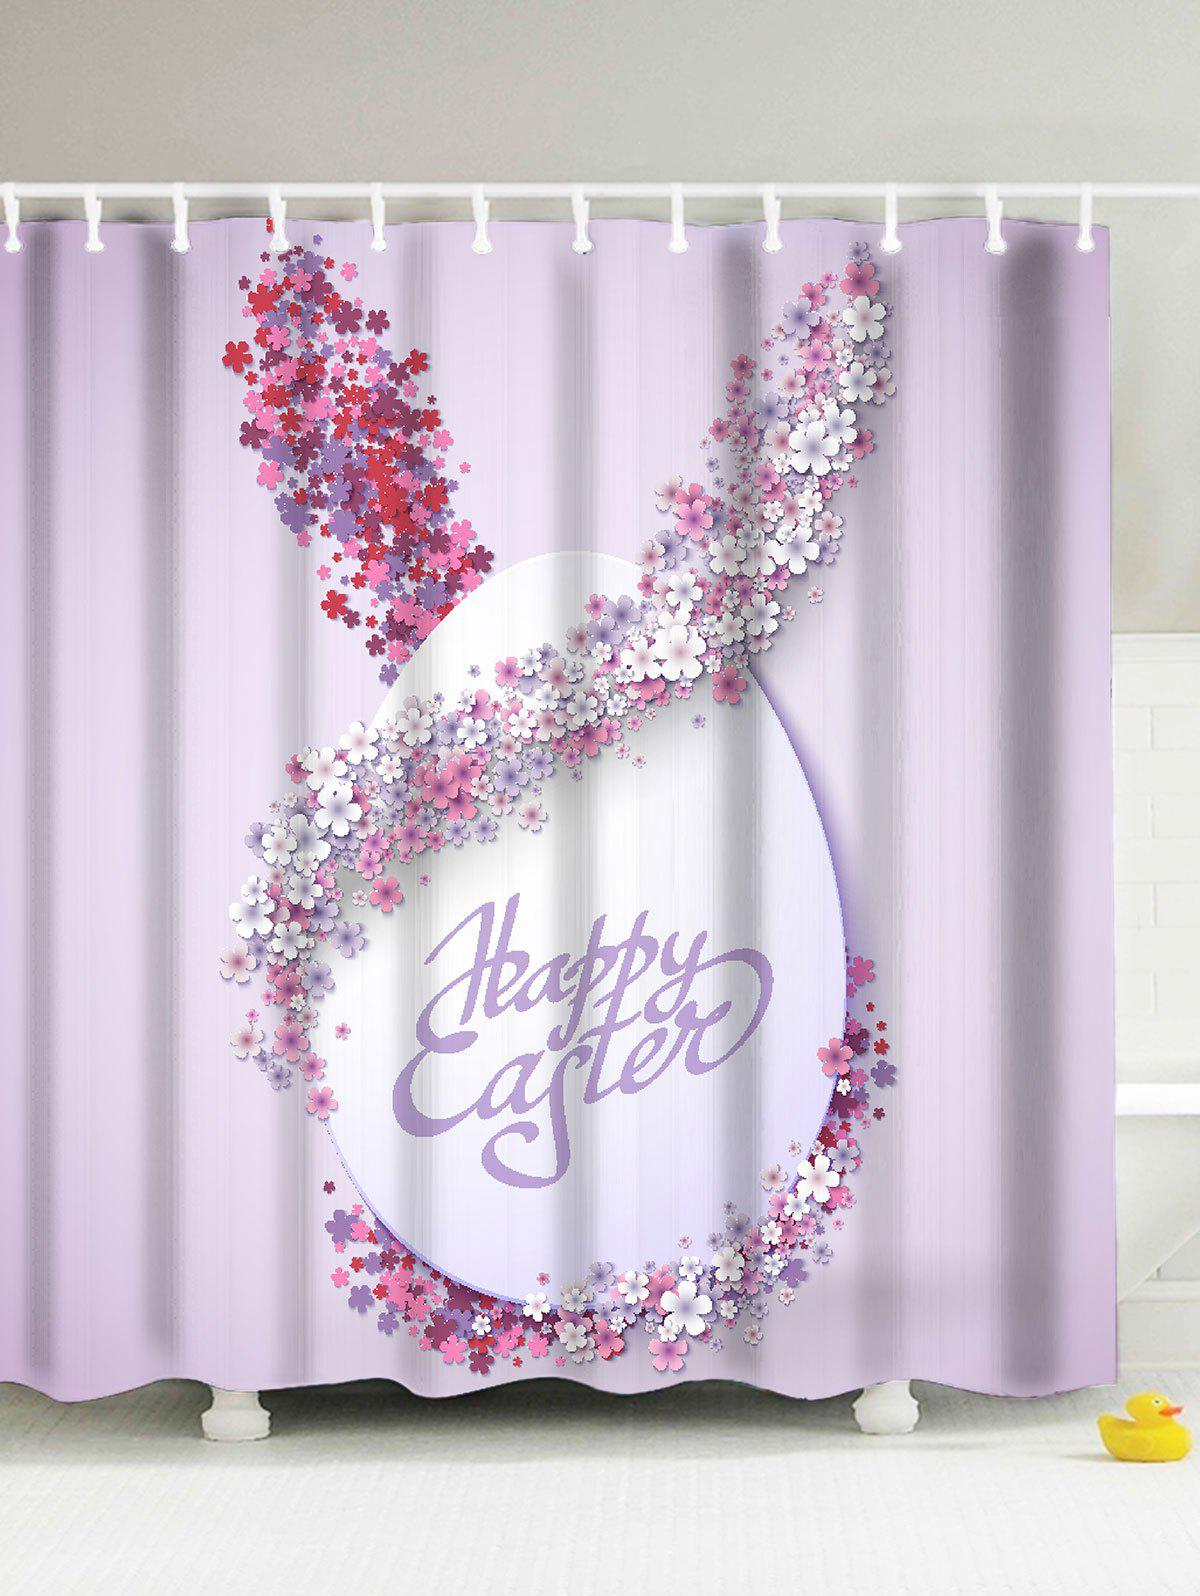 Easter Decor Anti-Bacterial Waterproof Shower Curtain слоновая цифровая печать anti bacterial waterproof polyester shower curtain